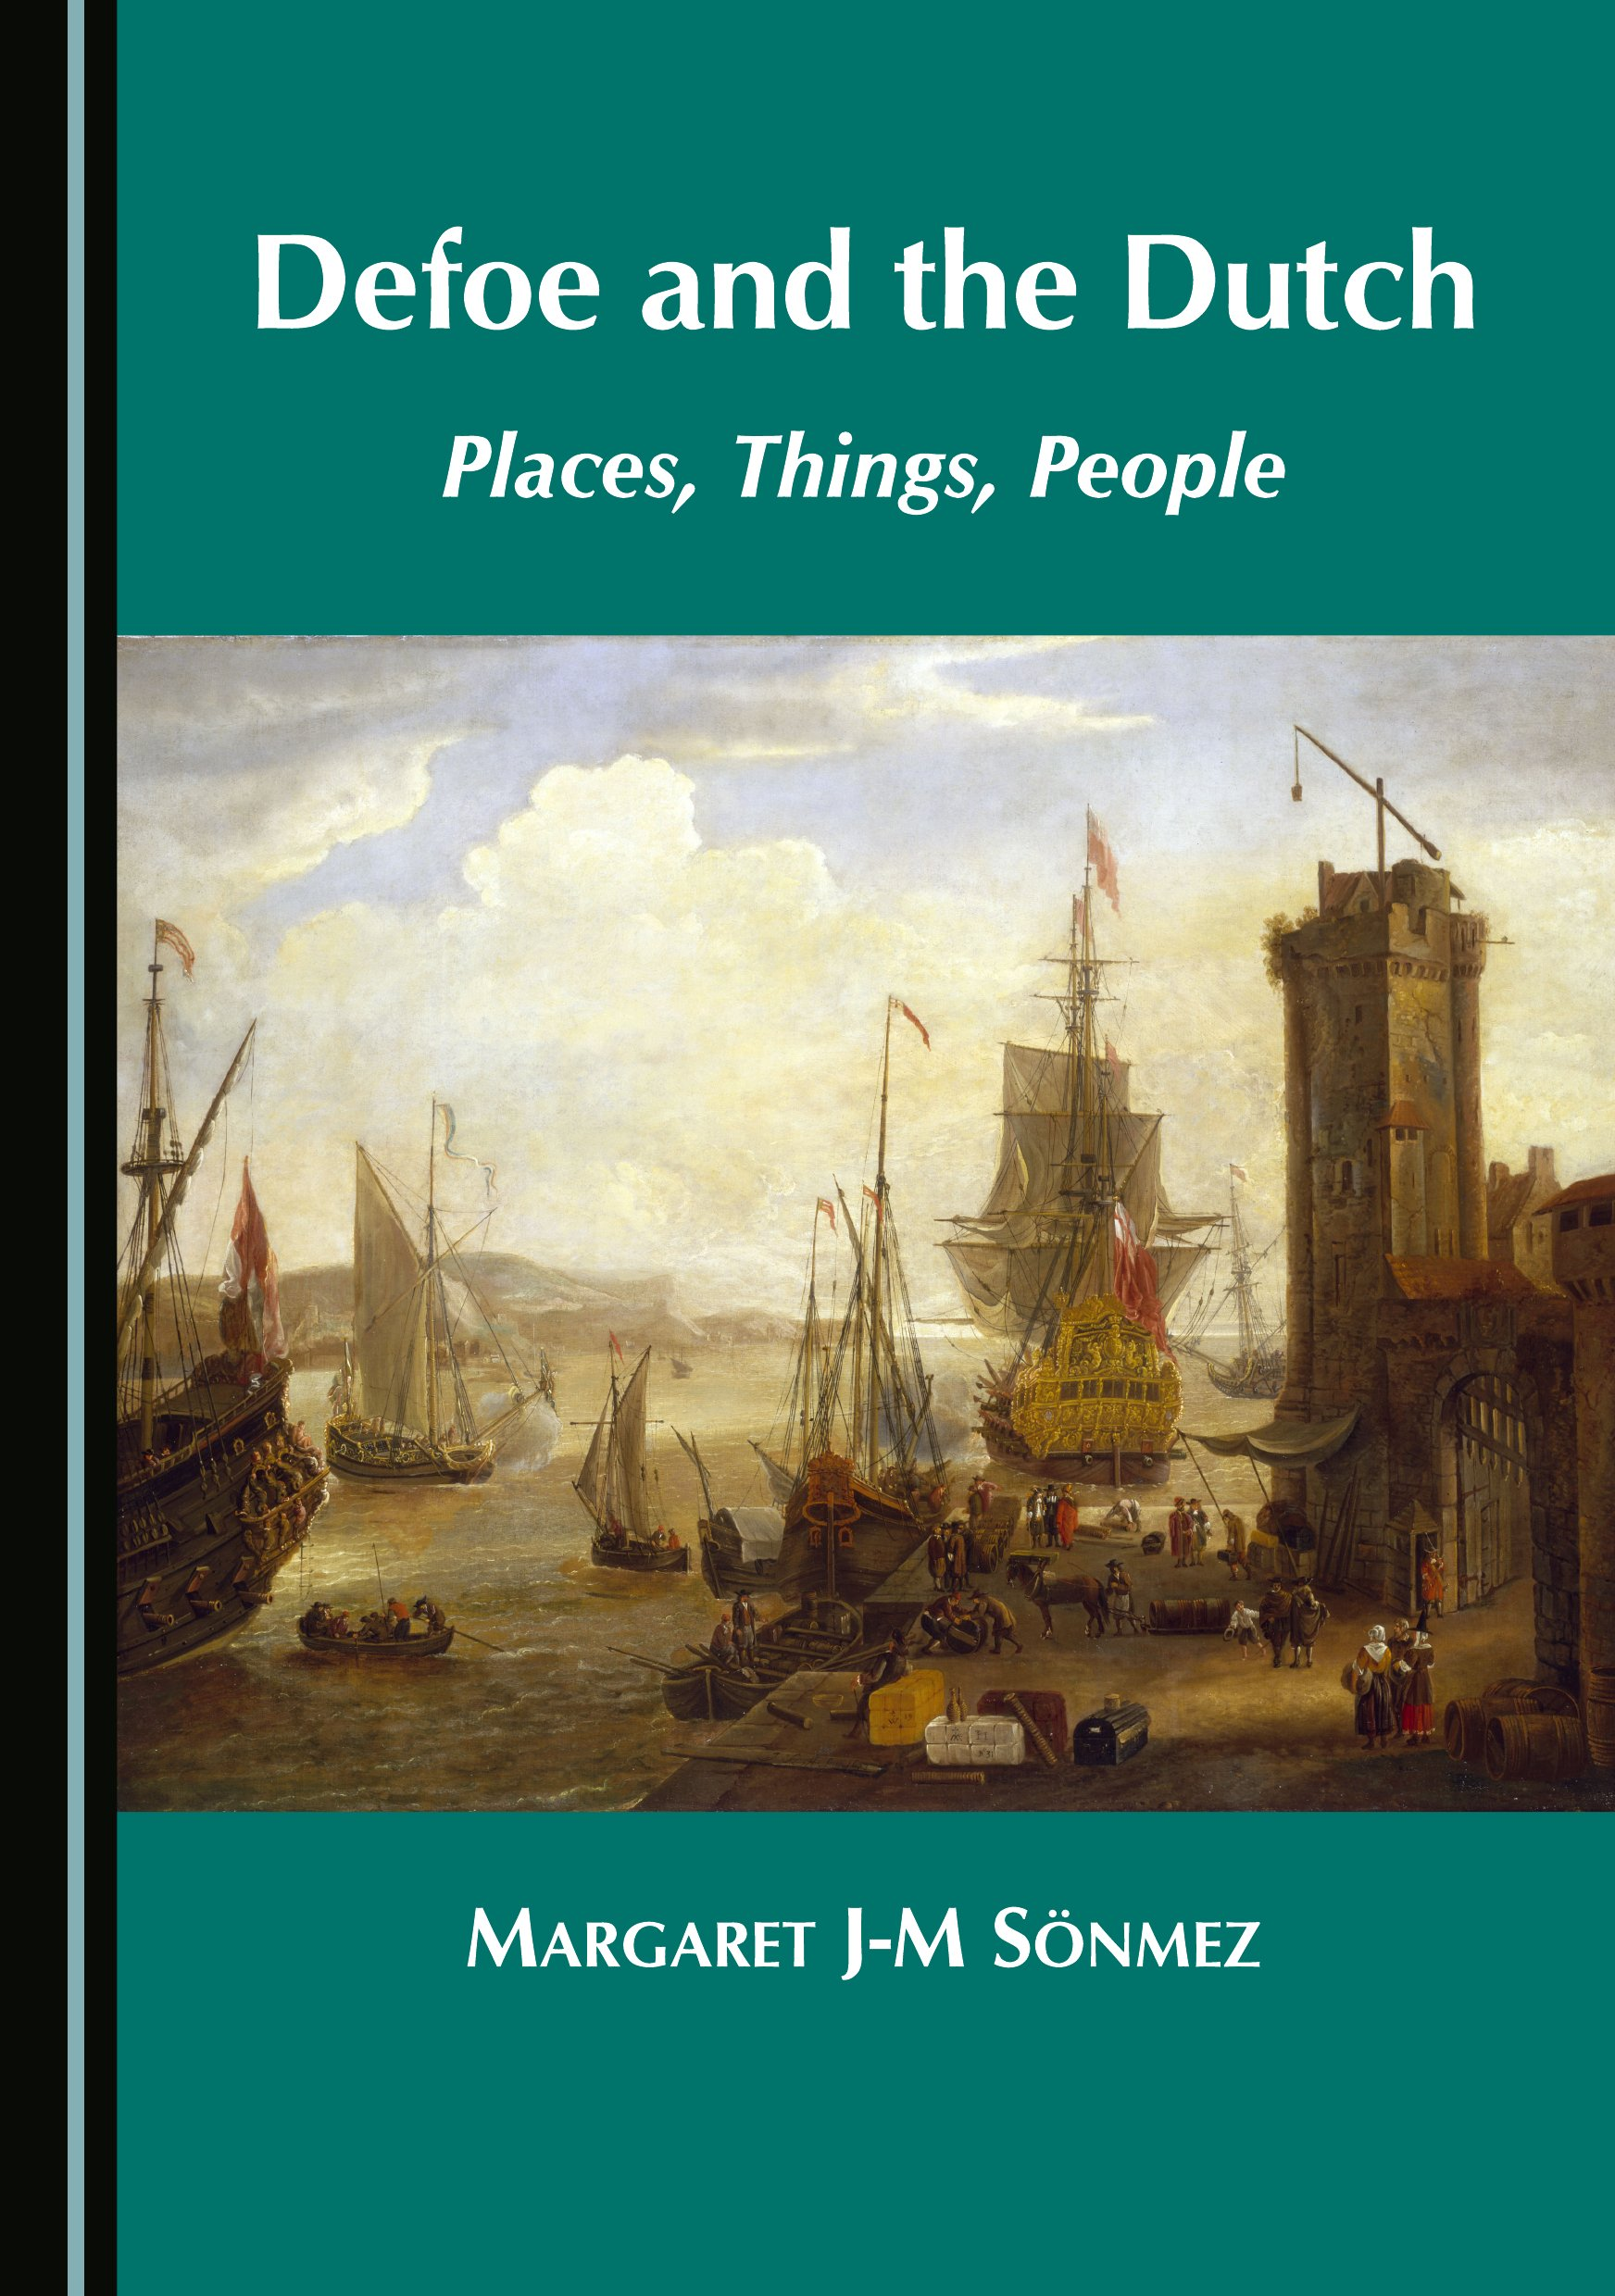 Defoe and the Dutch: Places, Things, People